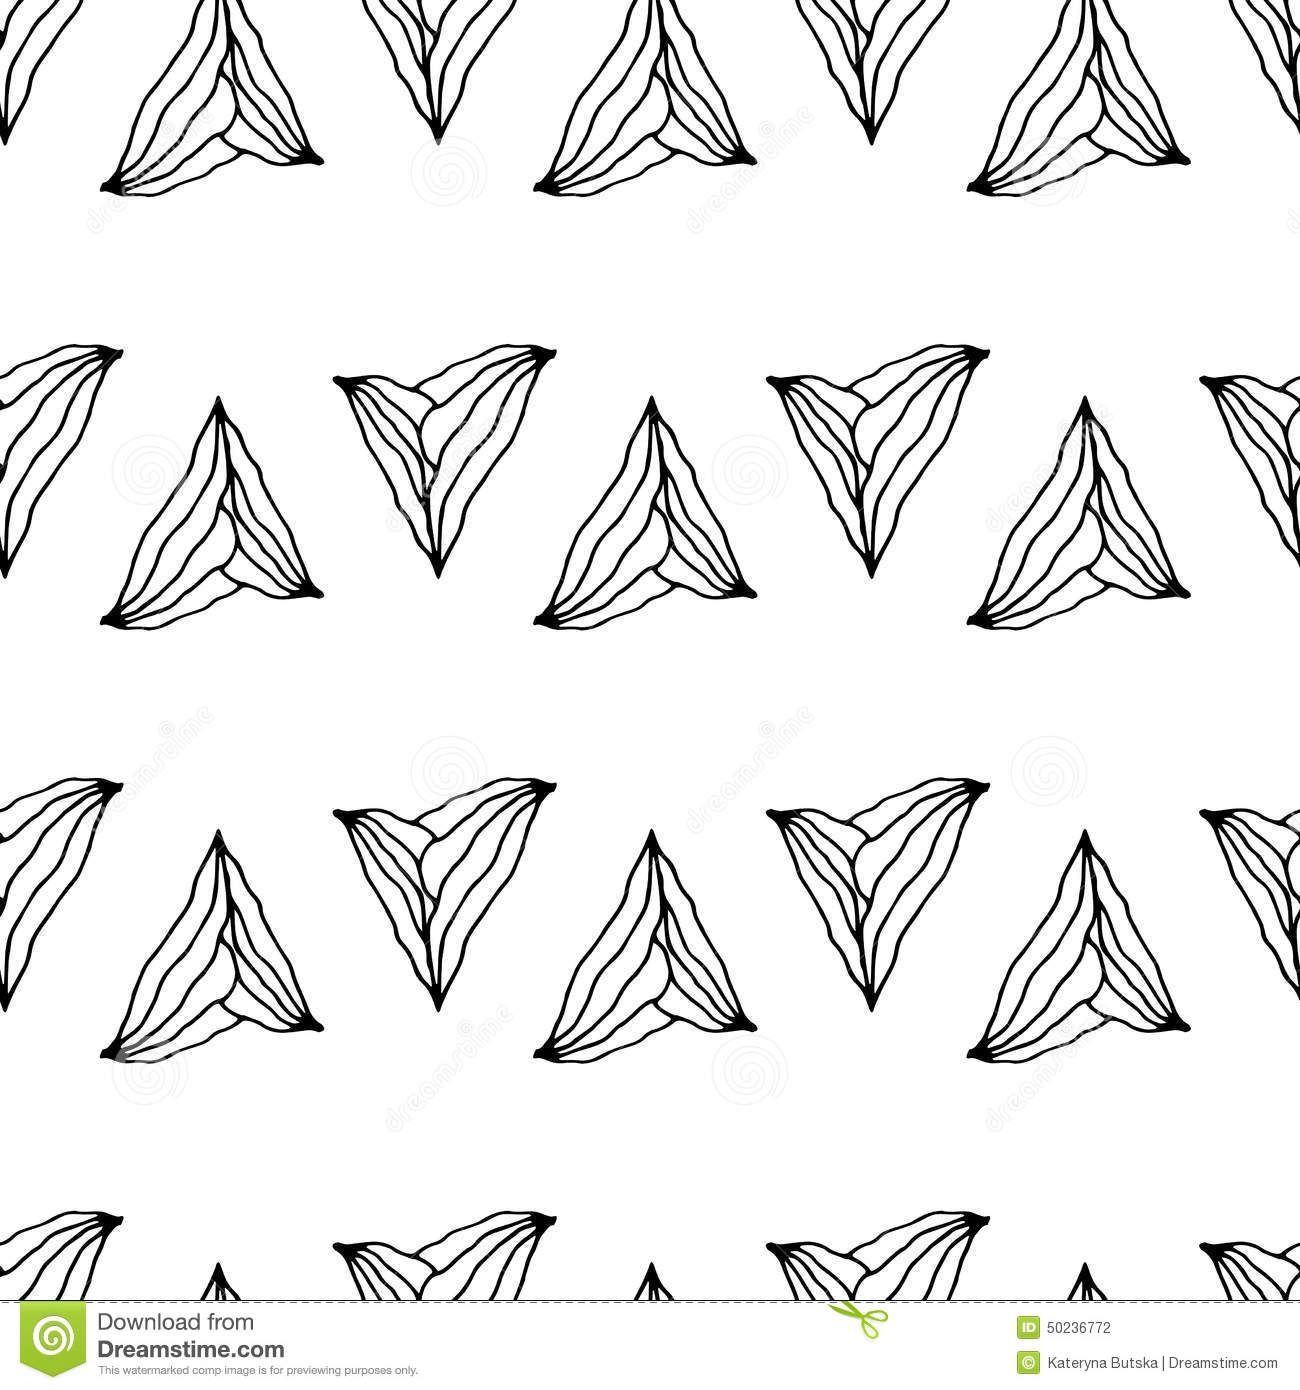 MACKMjHvAYg Lock Outline Icon as well Light Bulb On 78387 term technology page 5 position 54 additionally 554176 together with 514021 moreover Curve Diagram 3493020. on art for technology